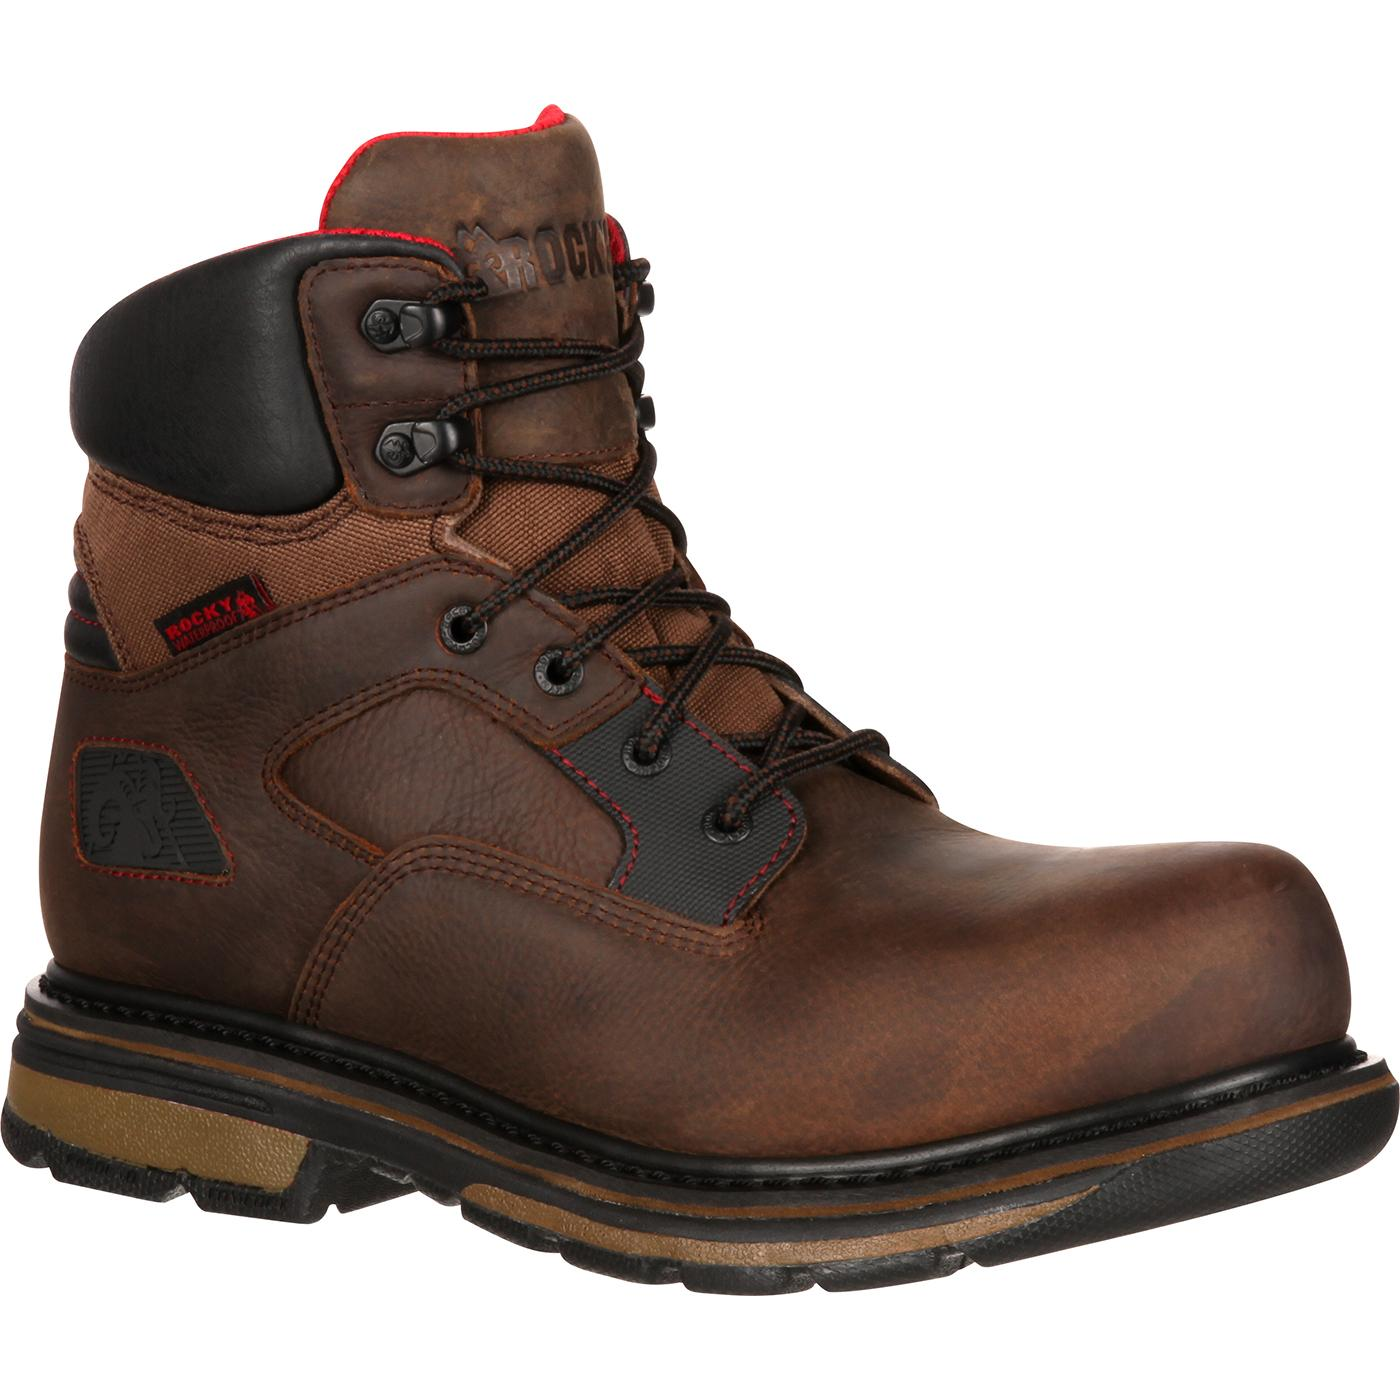 Rocky Hauler Composite Toe Waterproof Work Boot, RKK0128